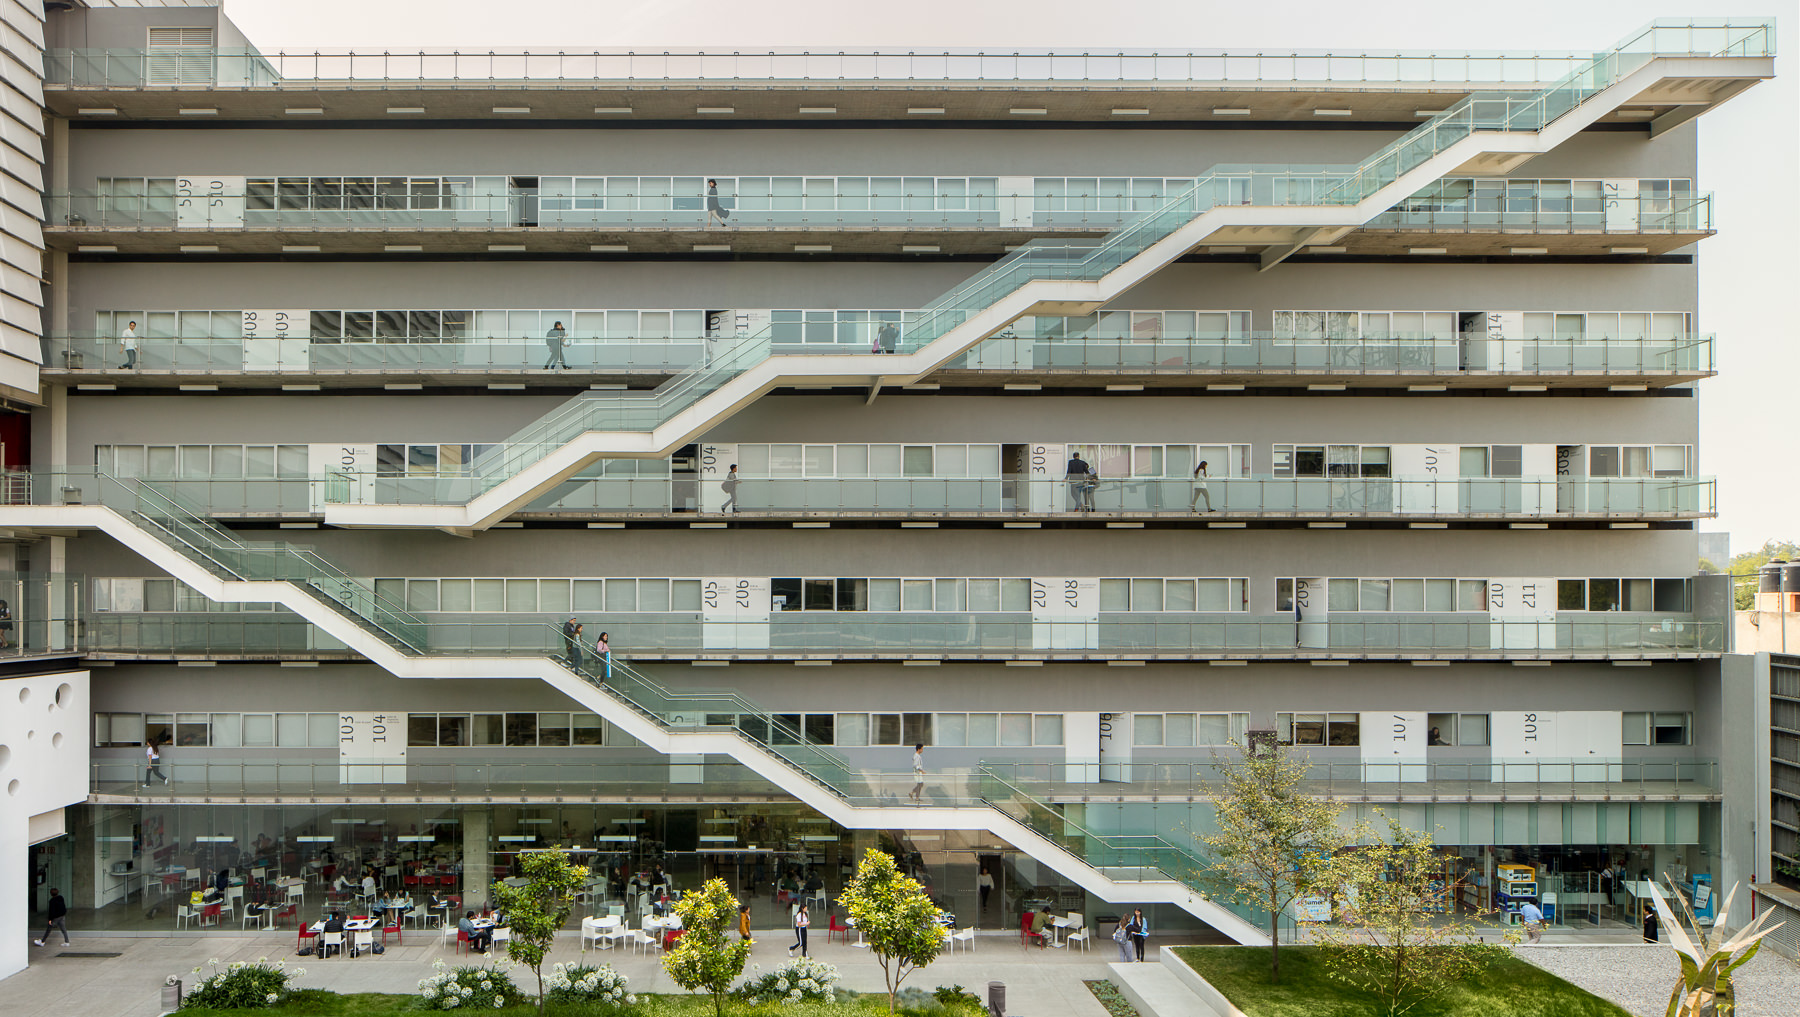 CENTRO University - TEN Arquitectos